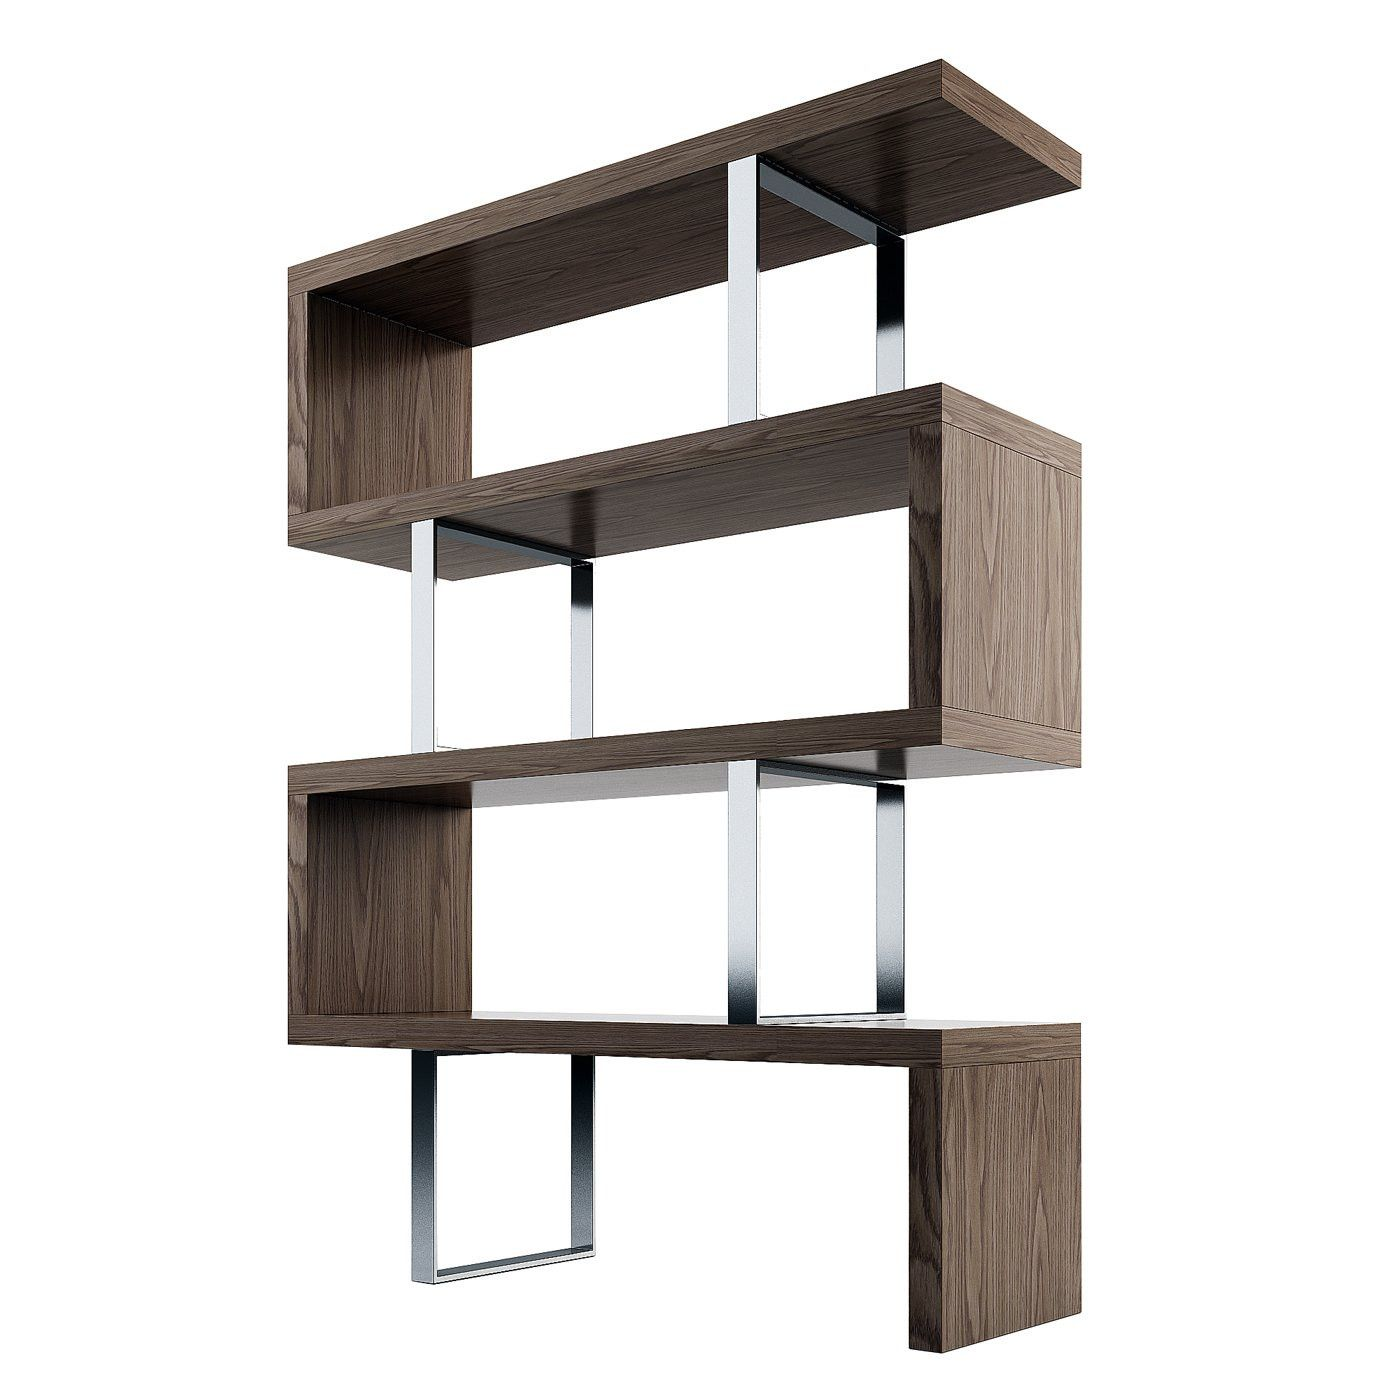 Pearl bookcase walnut pearls open shelving and wood veneer